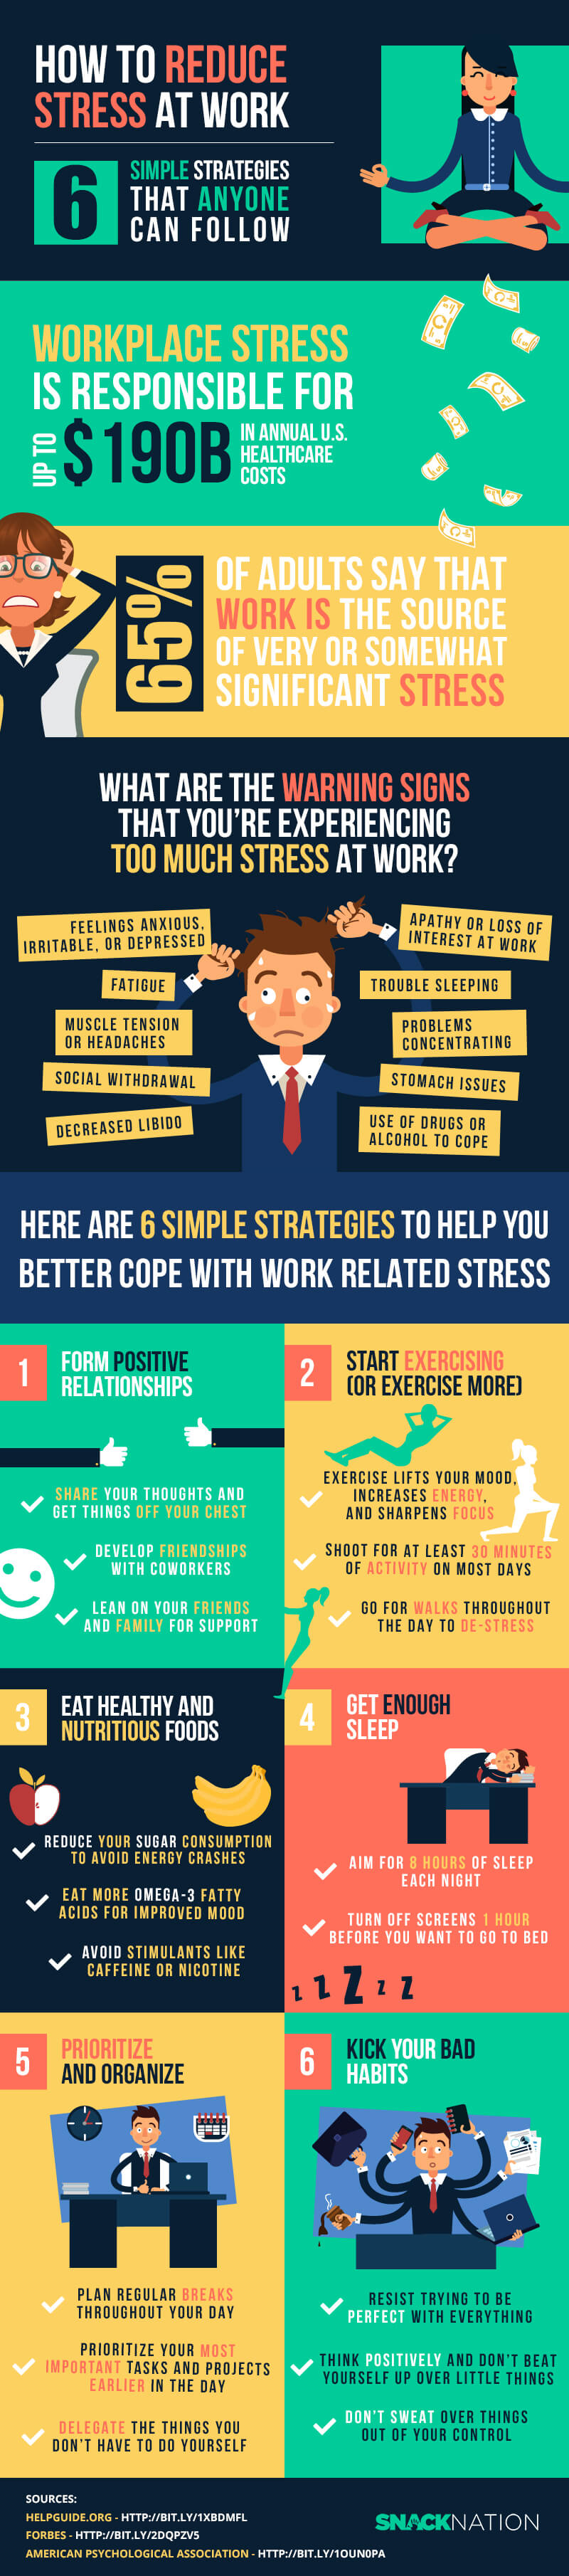 How-to-reduce-stress-at-work-infographic-plaza